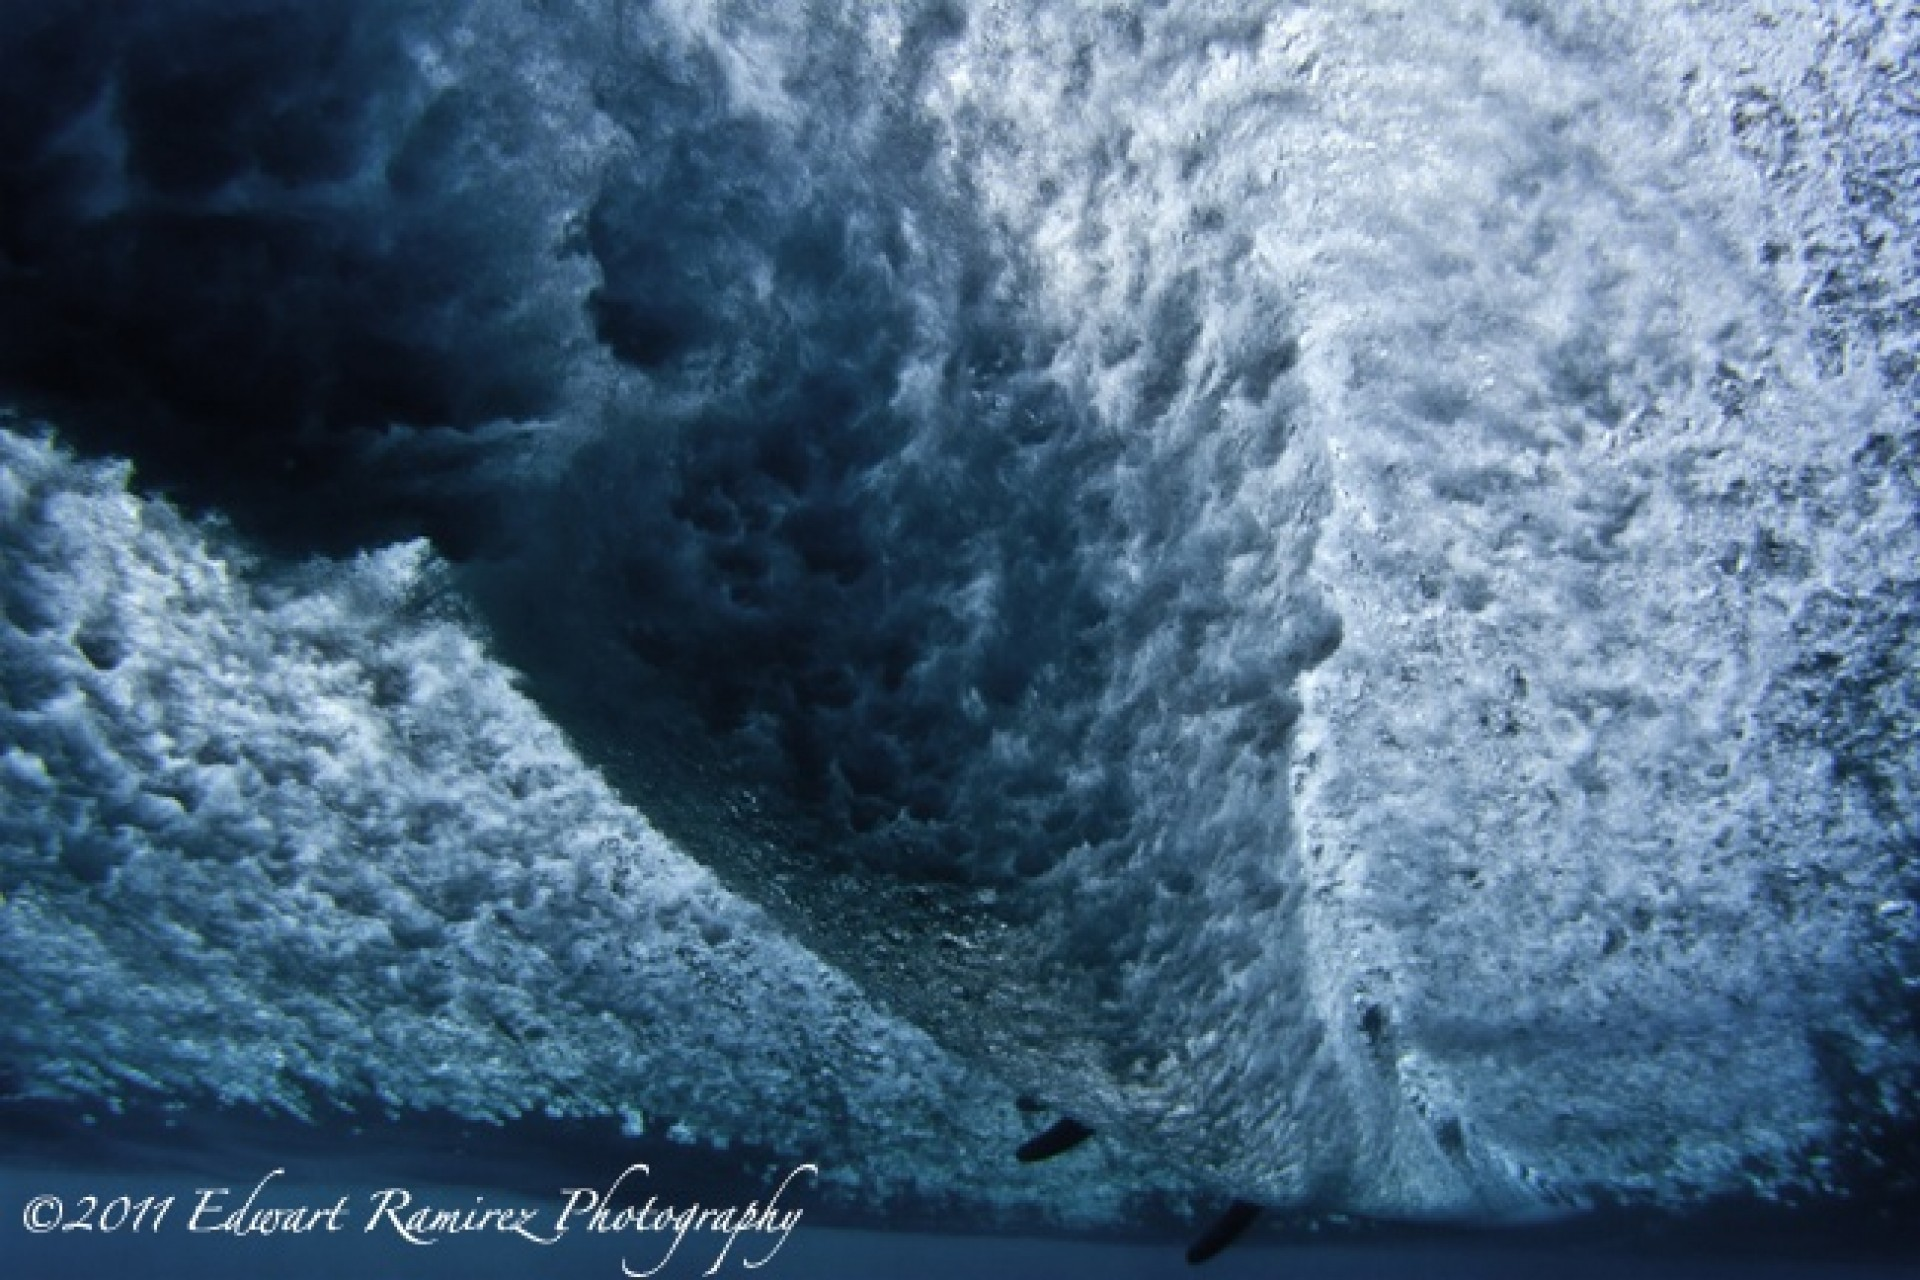 Edwart Ramirez's photo of Rocky Point